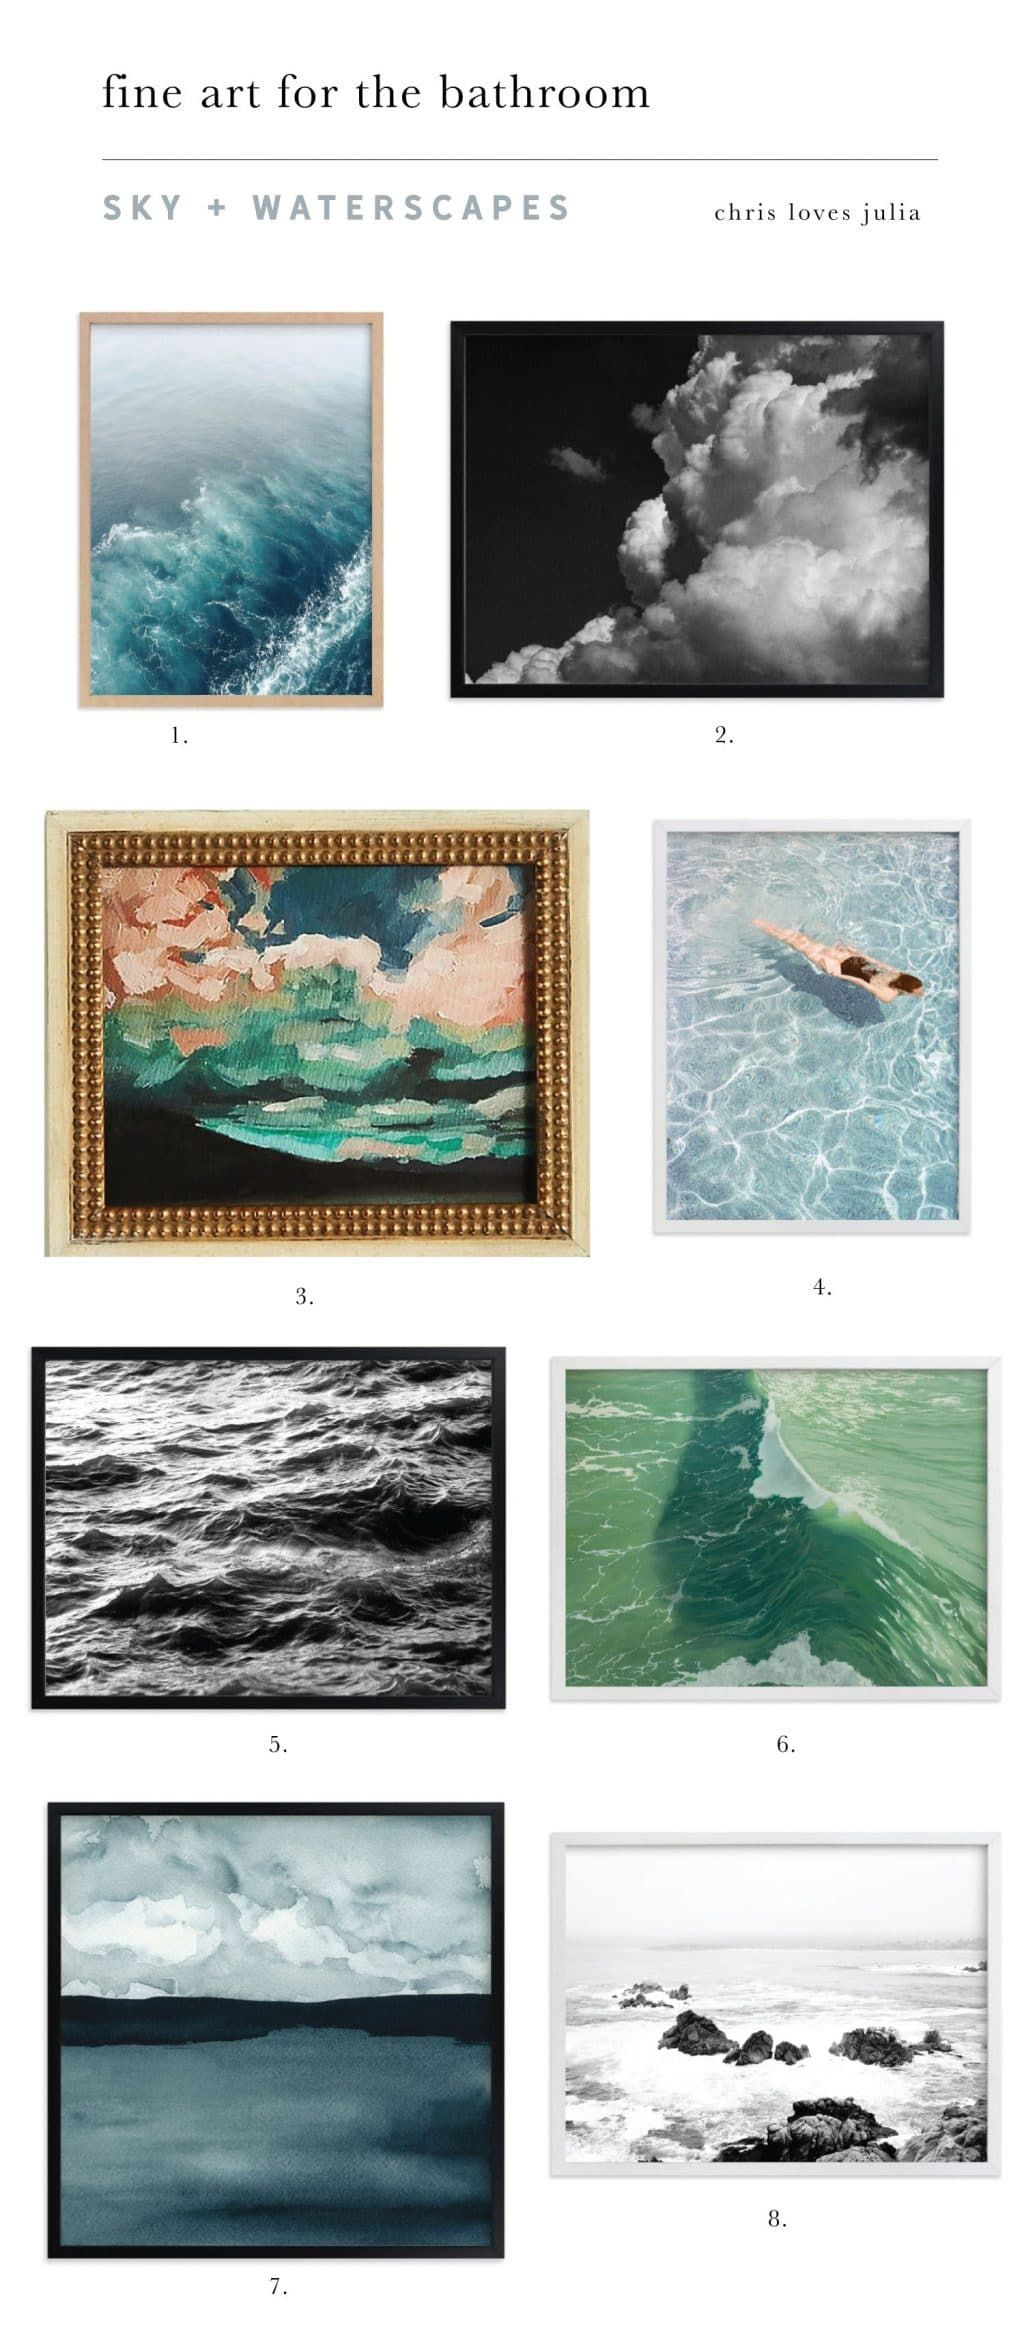 21 Fine Art Pieces For The Bathroom